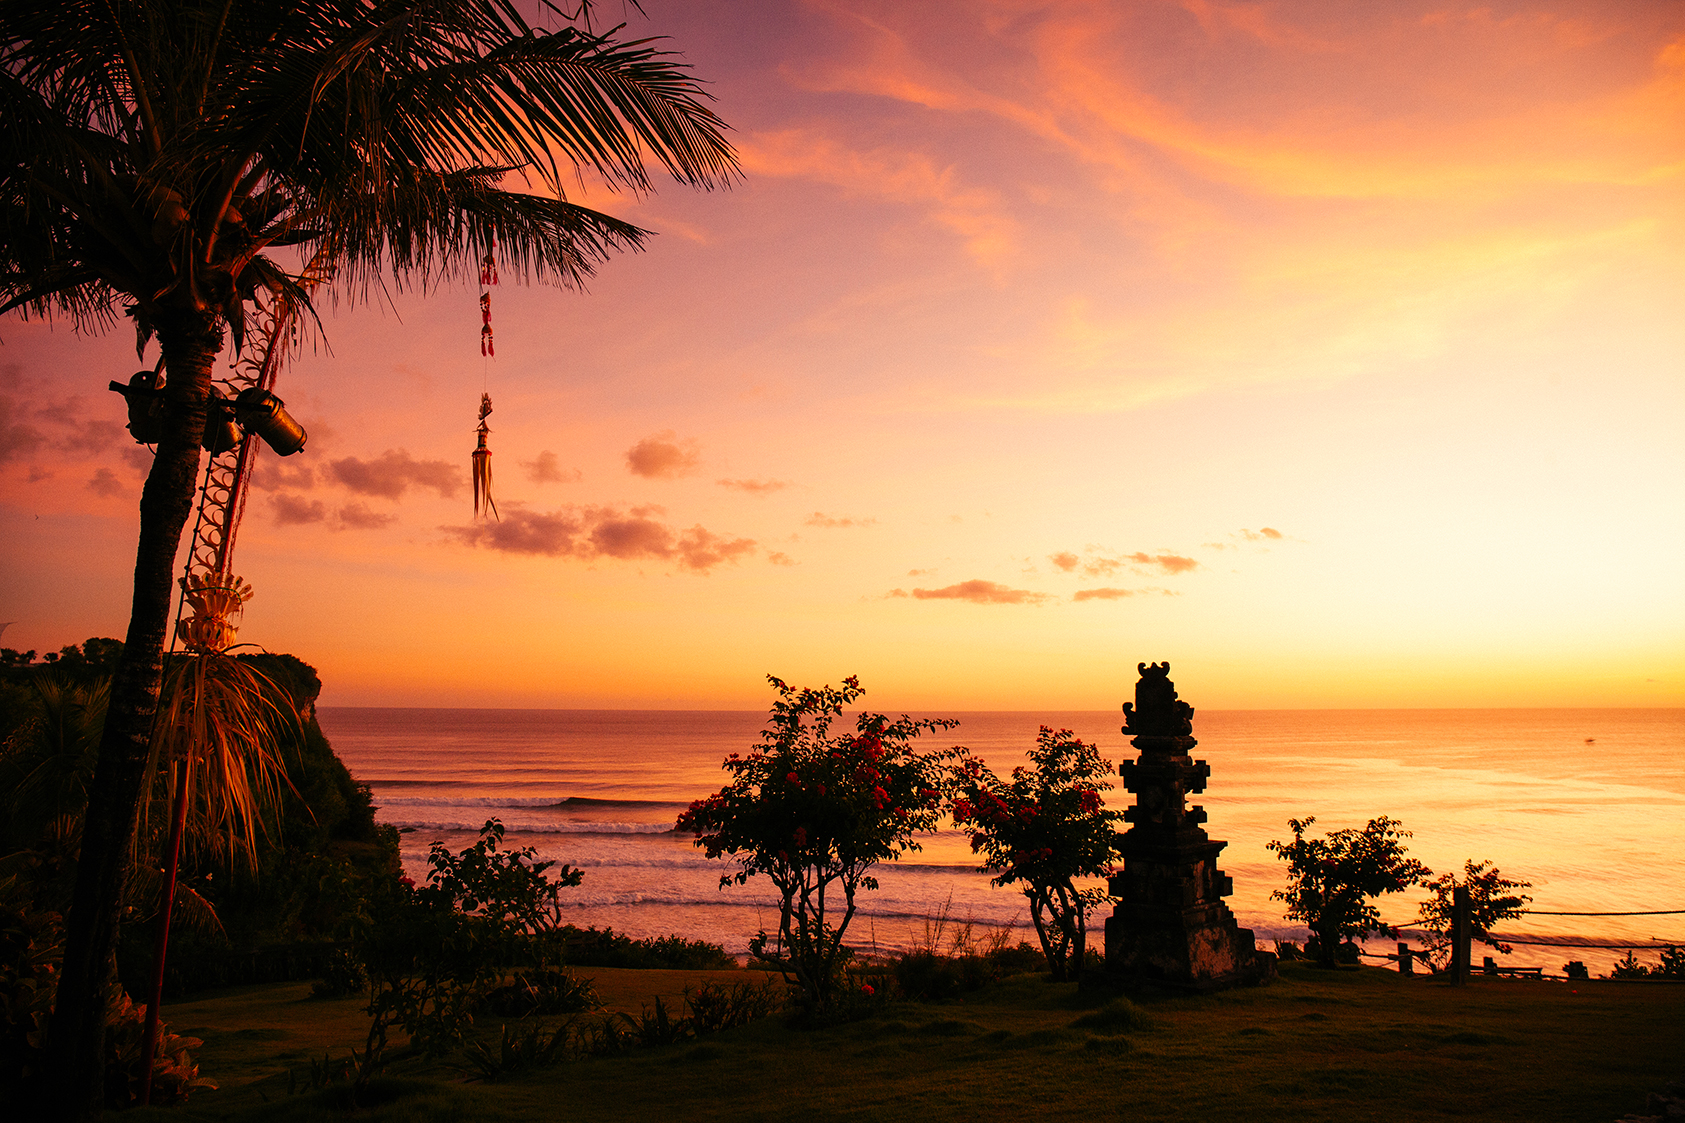 MAGICAL SUNSETS - Bali is just south of the equator, so it's reliably hot & sunny. It's tropical and wet. The largest (and still active) volcano, is considered by Balinese to be the center of the universe.